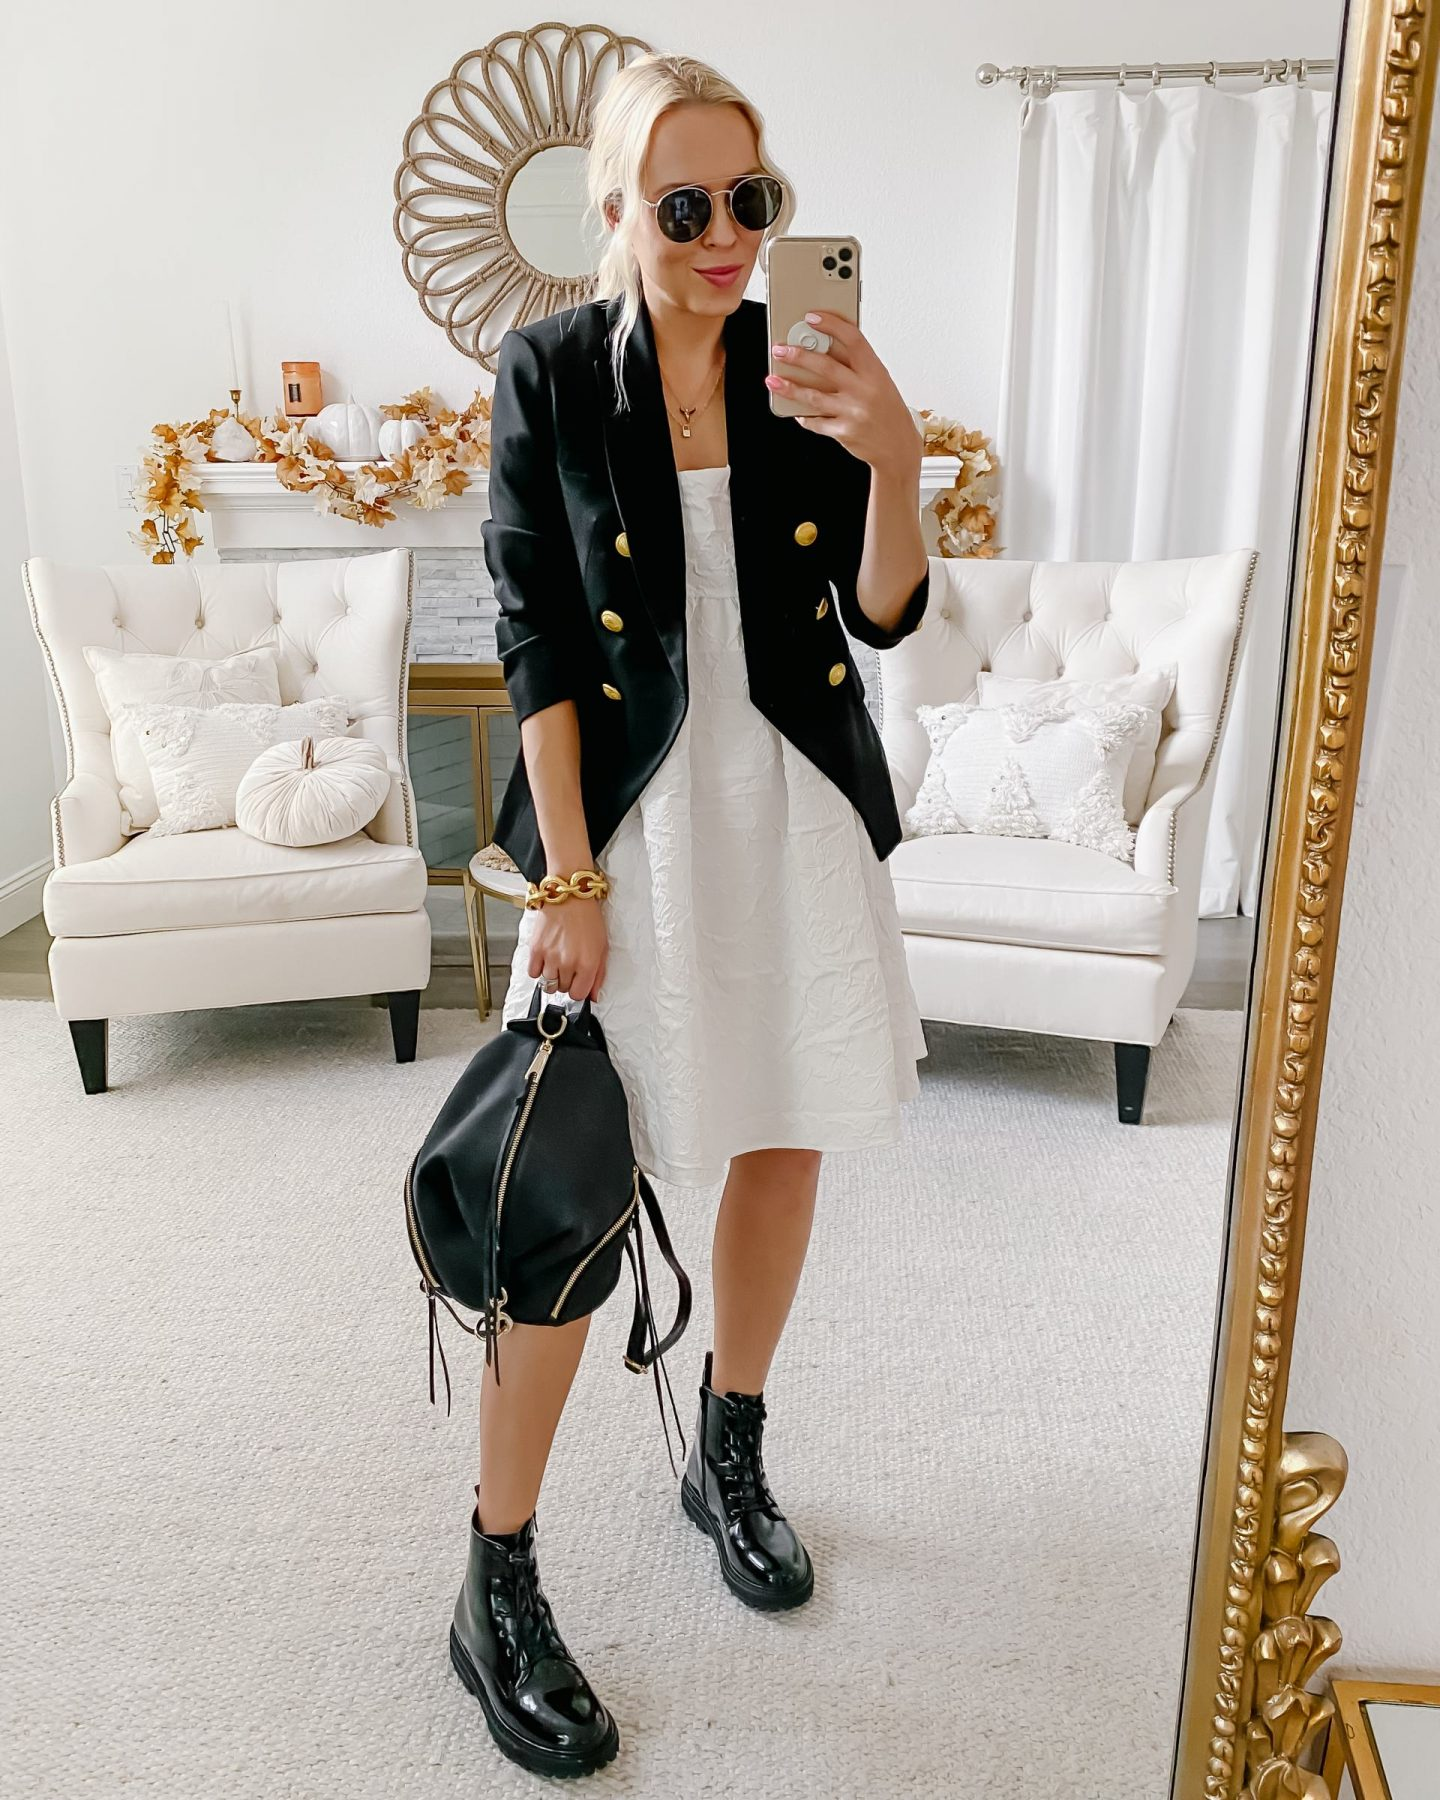 Express double breasted white blazer, chic neutral style inspiration for fall, by San Francisco fashion blogger Lombard & Fifth.